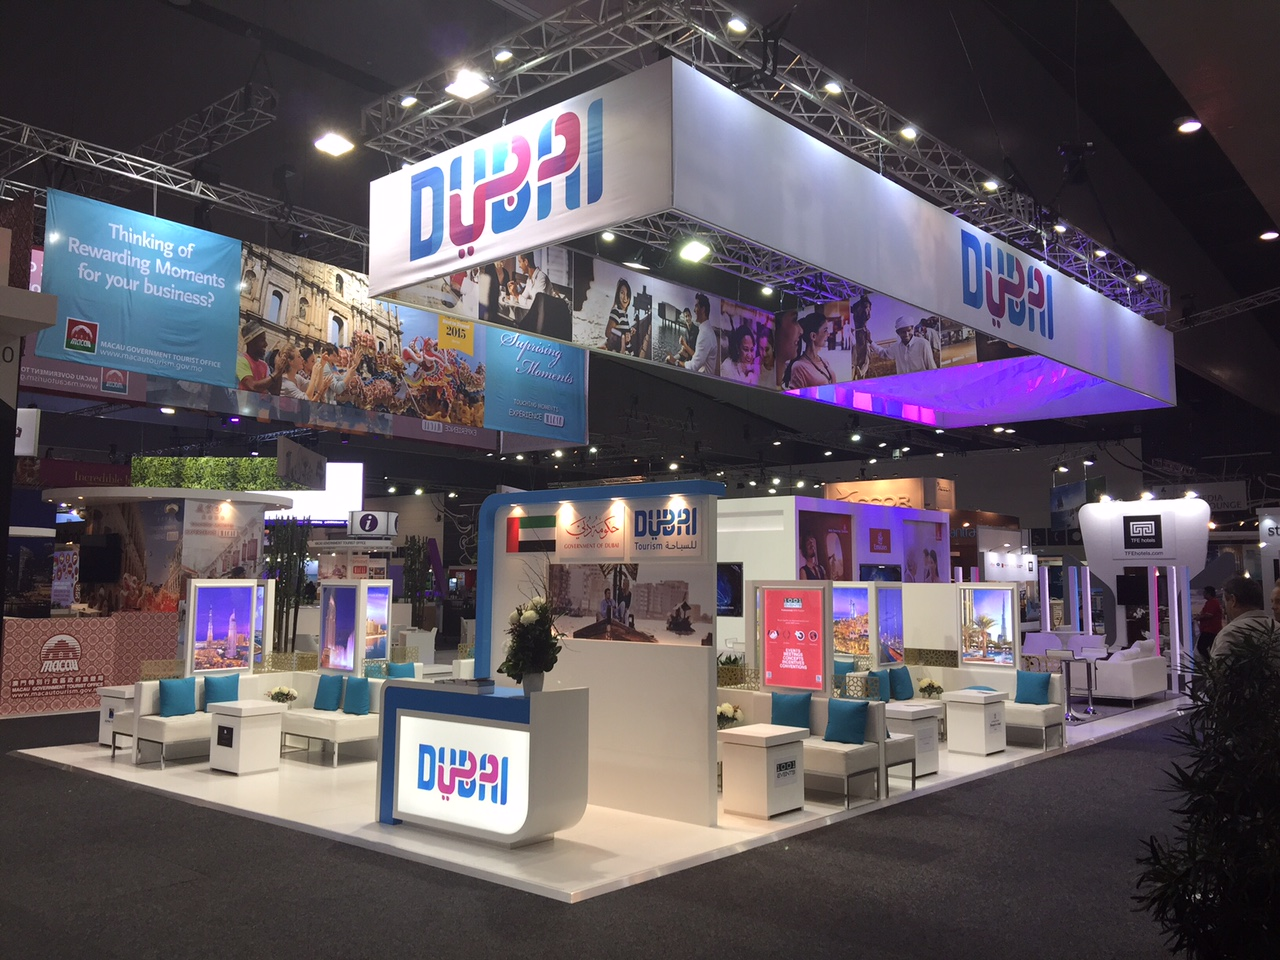 Exhibition Stand Wraps : Dubai tourism exhibition stand u archisign